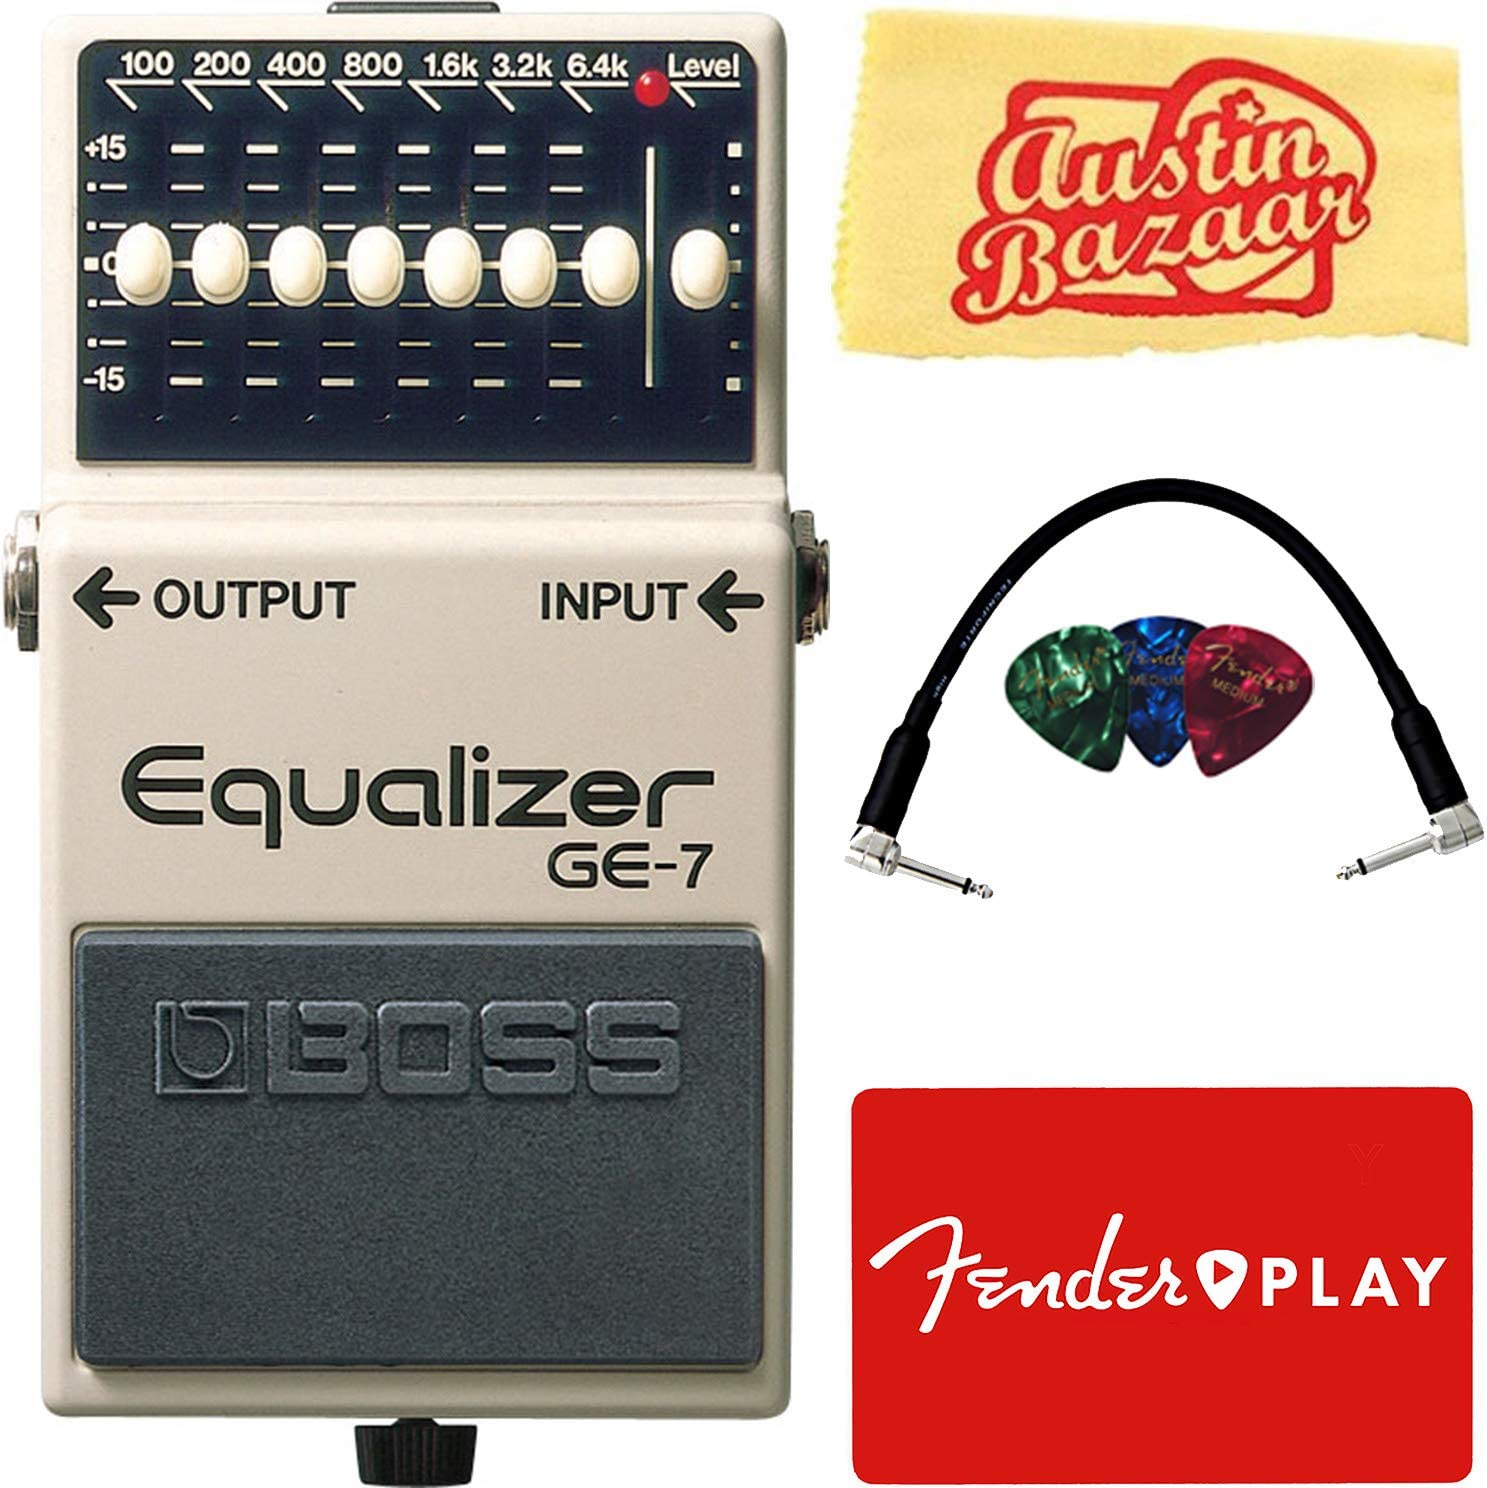 BOSS GE-7 Equalizer Pedal Bundle with Patch Cable, Picks, Fender Play Trial, and Austin Bazaar Polishing Cloth